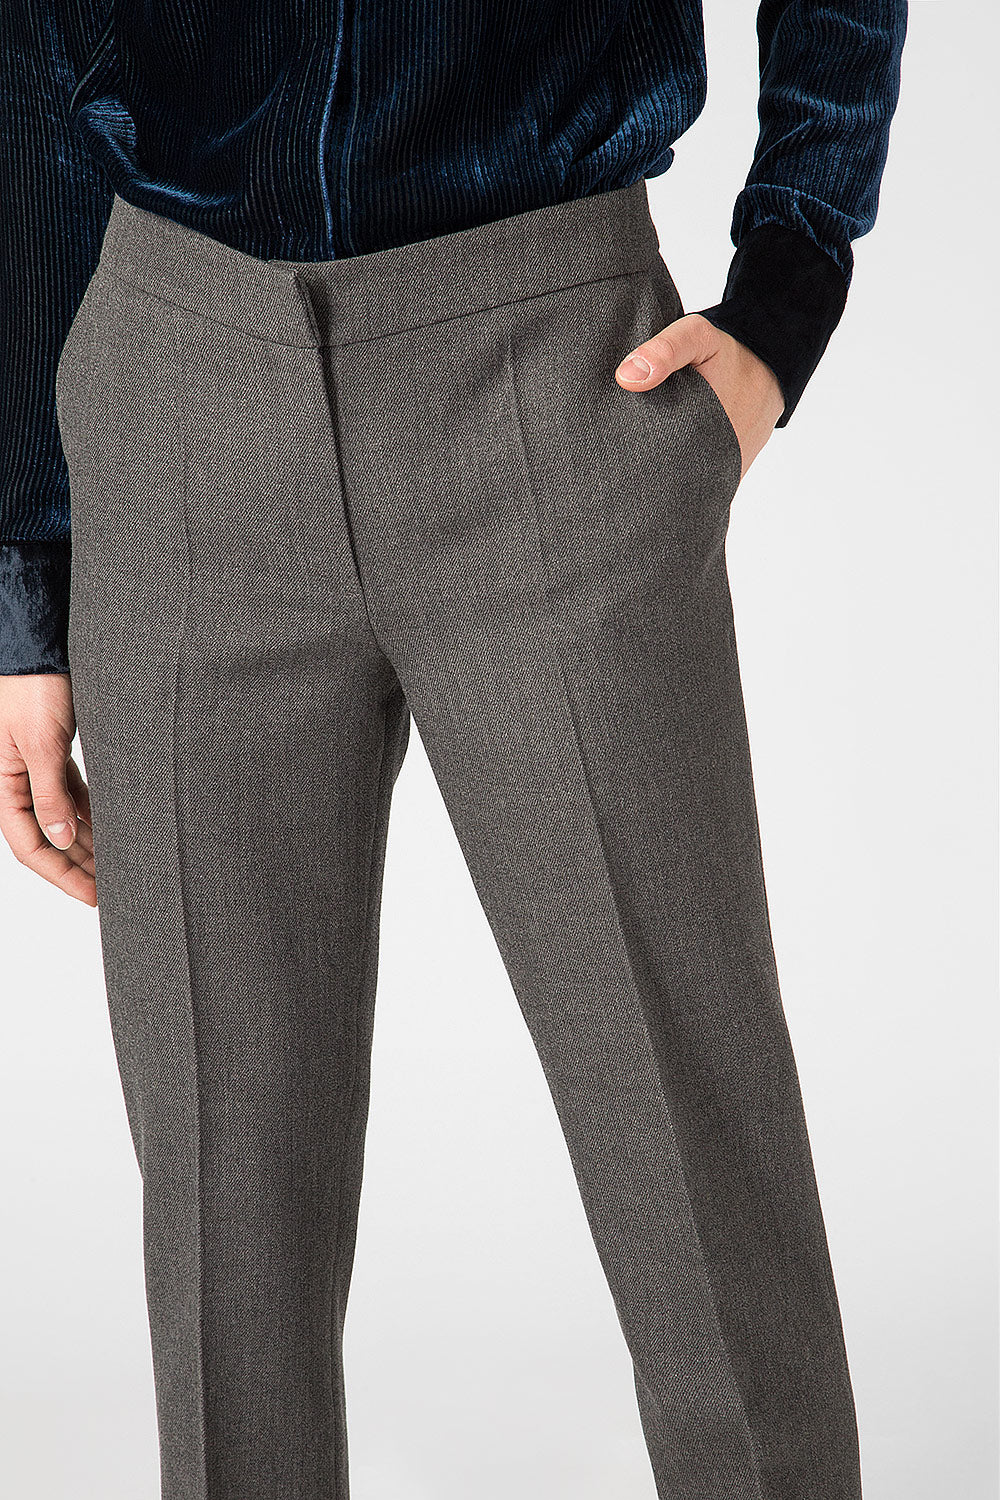 Gray wool trousers